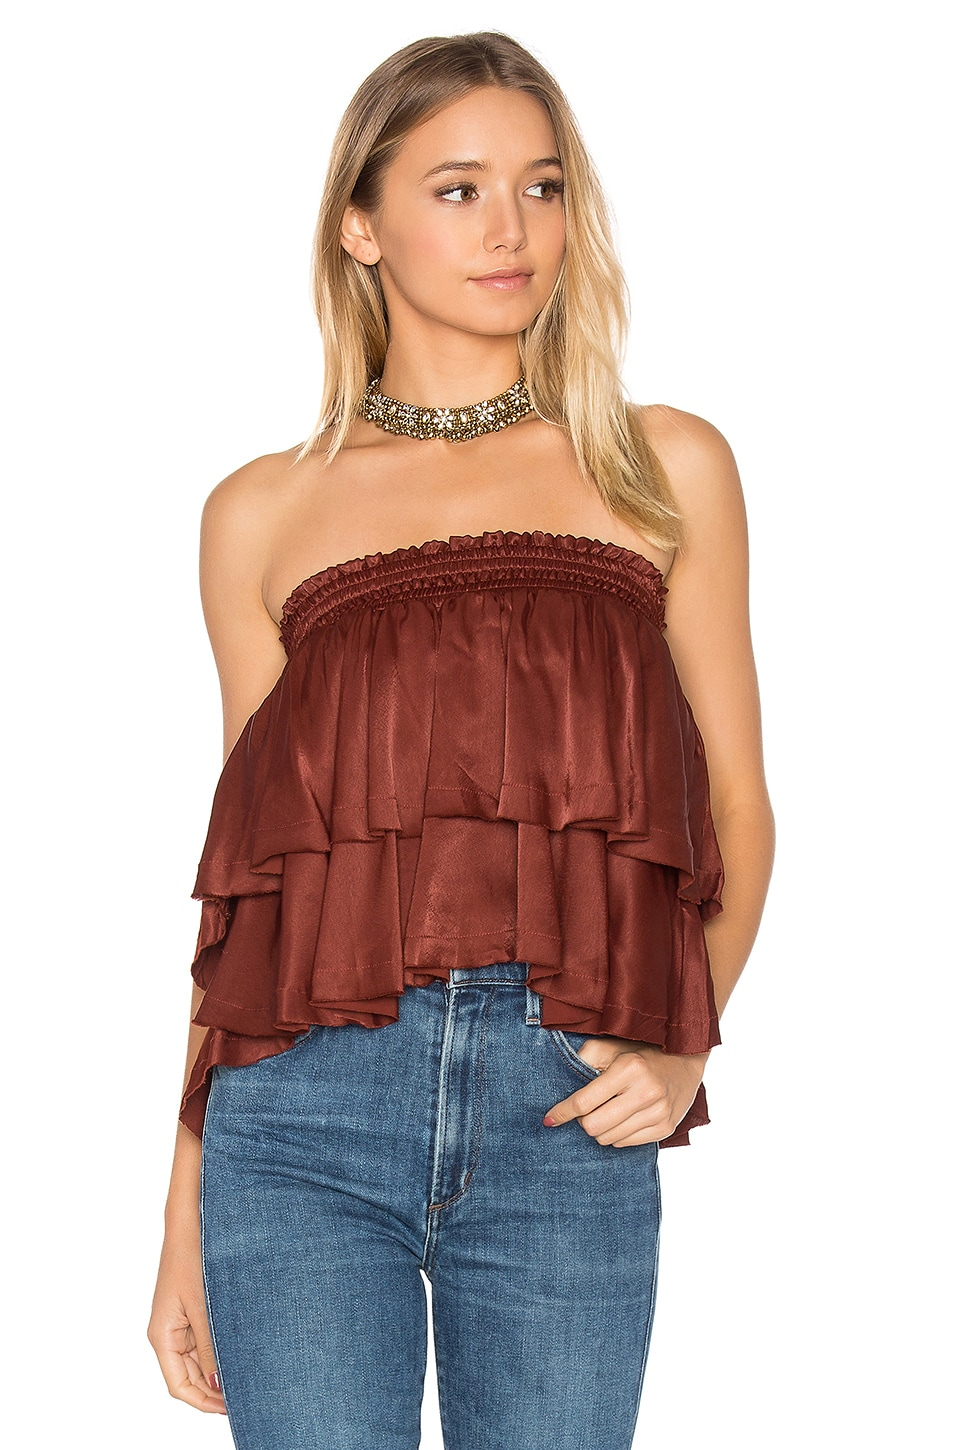 Paradiso Top by FAITHFULL THE BRAND